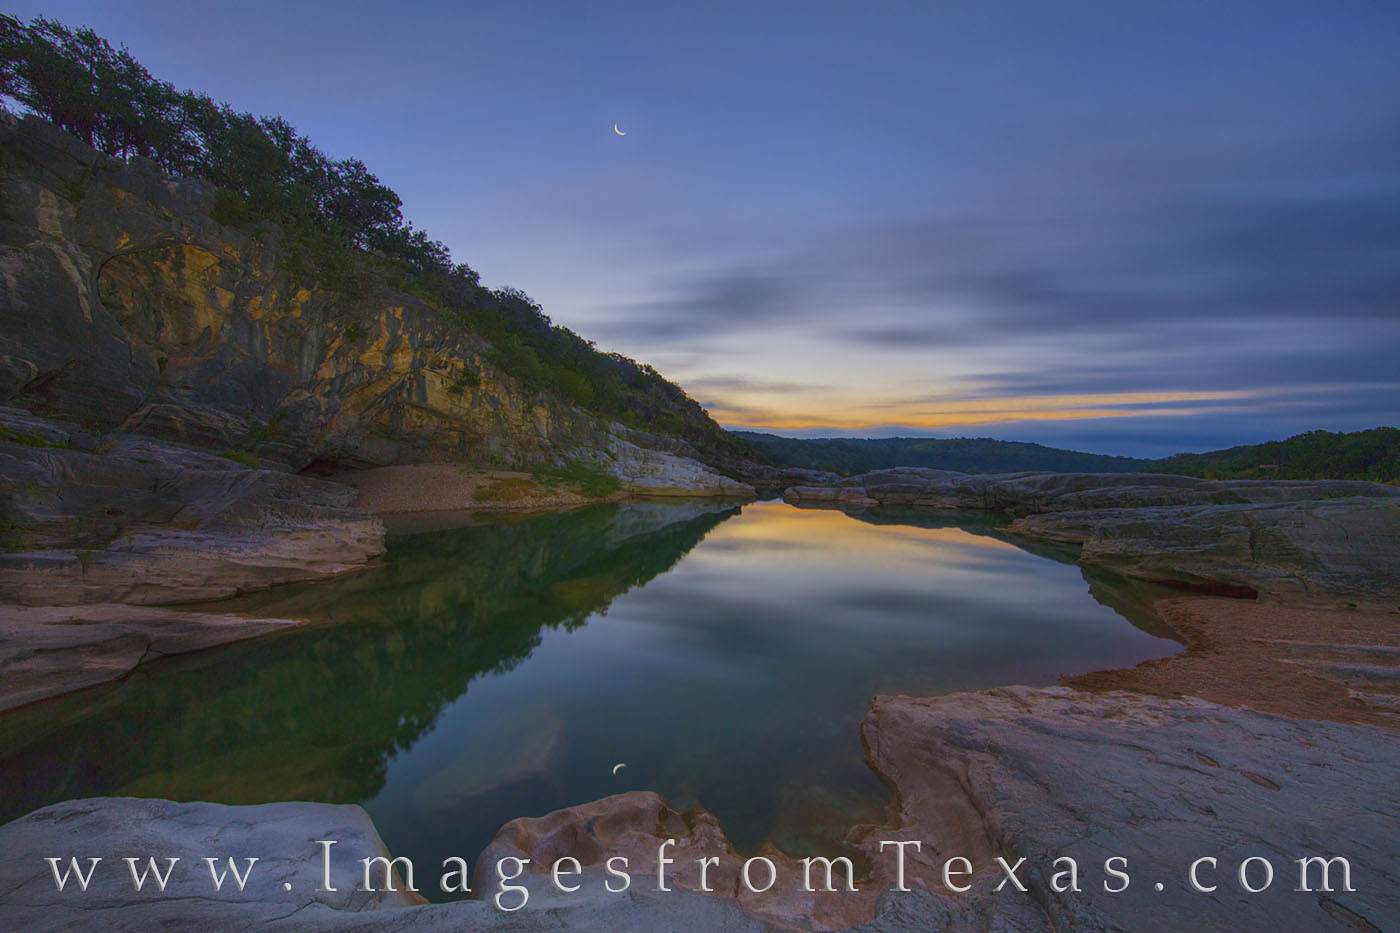 texas hill country, pedernales river, texas parks, texas state parks, pedernales falls, texas landscapes, texas morning, reflections, sky, september, photo